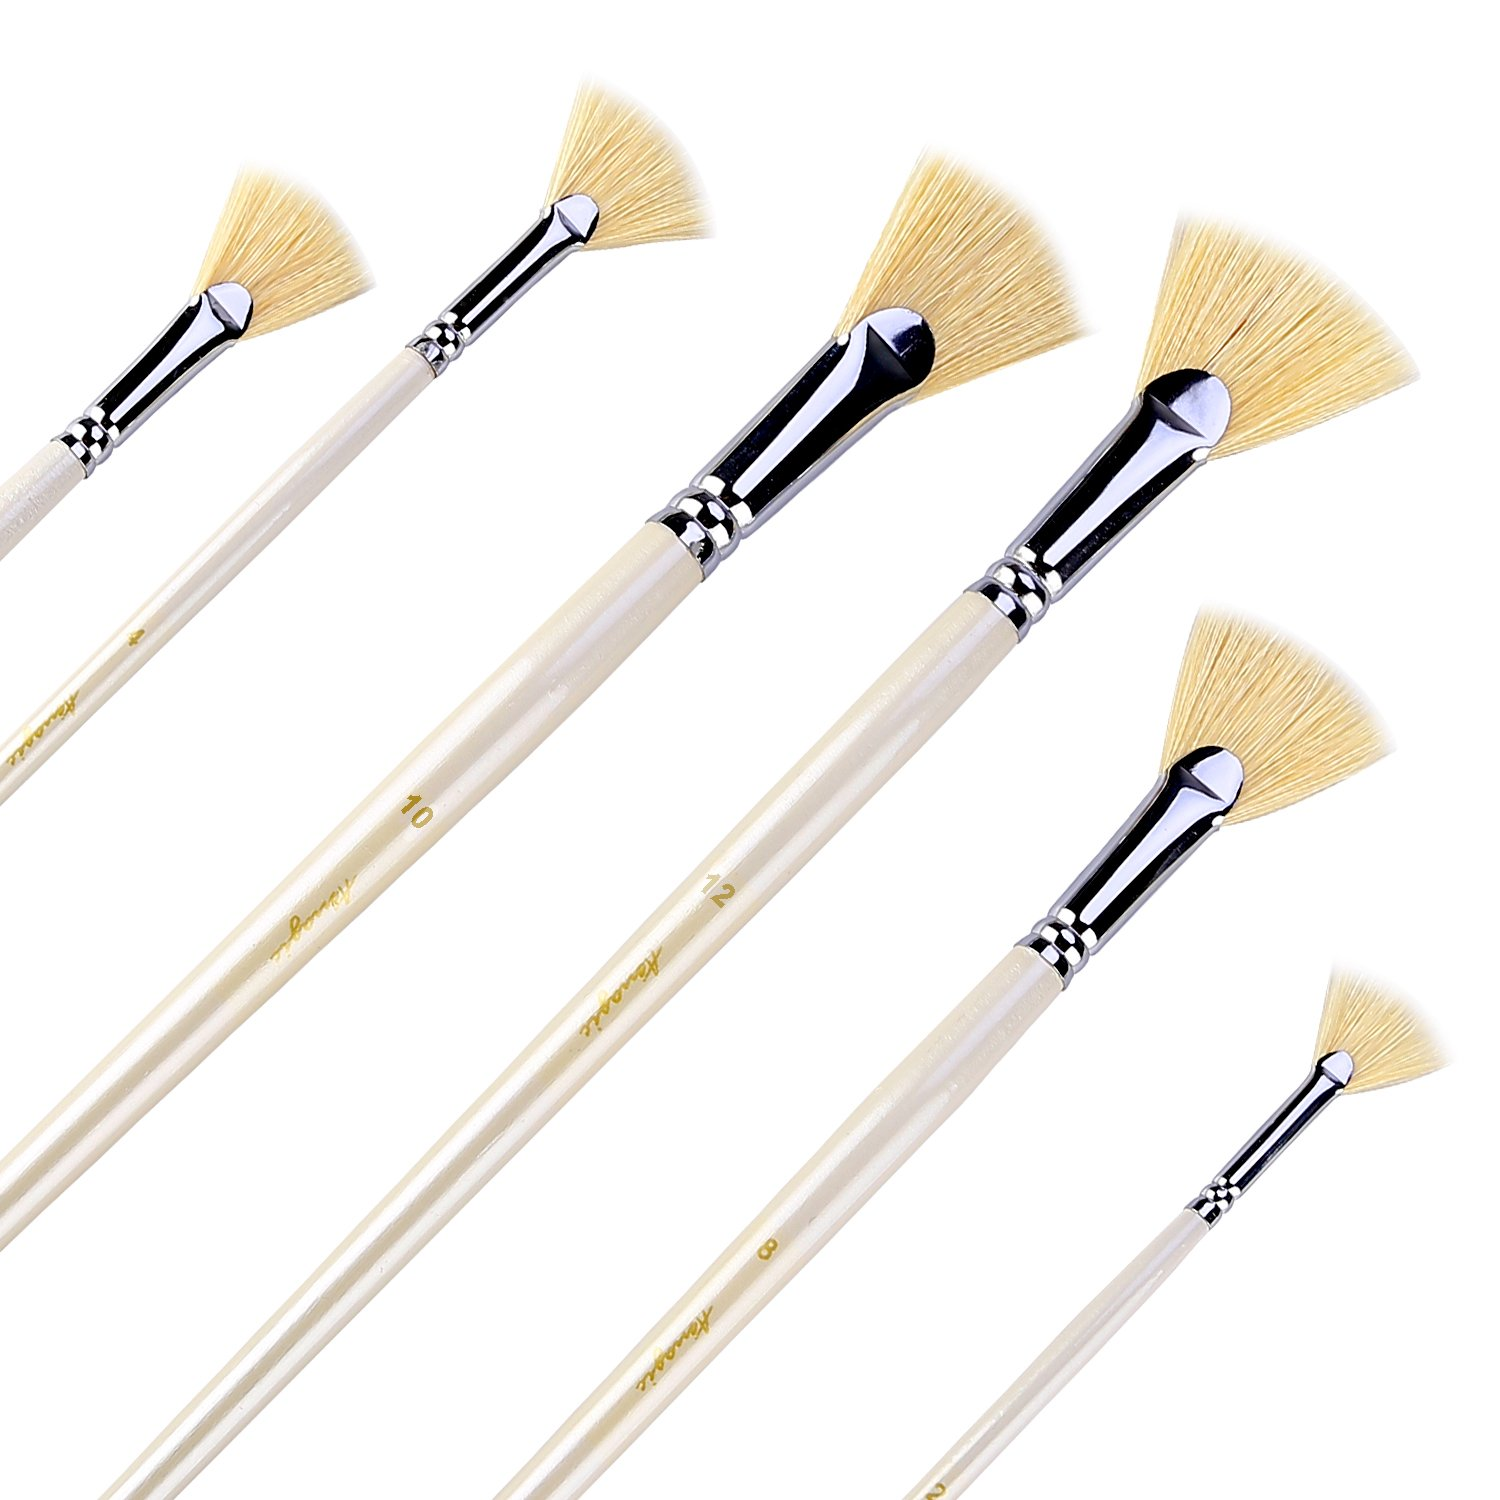 Fan Brushes - Amagic Artist Soft Anti-Shedding Hog Bristle Paint Brush Set for Acrylic Watercolor Oil Painting (6 Pcs)